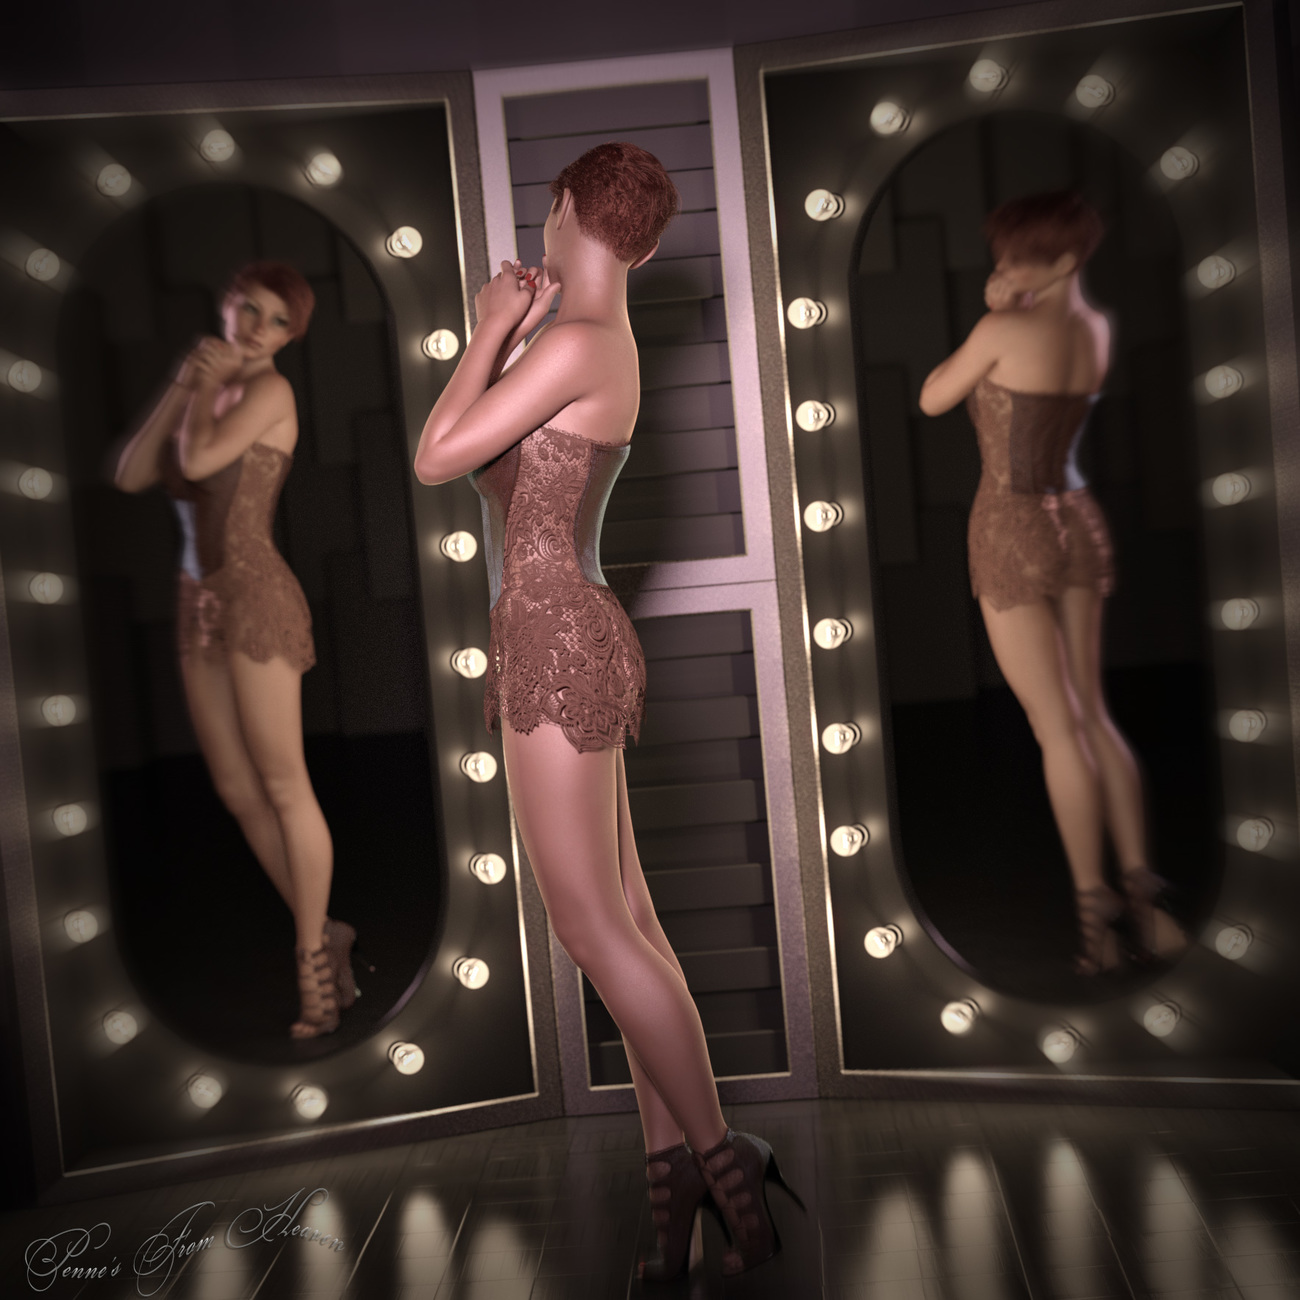 Tastefully Sultry by dollmommy